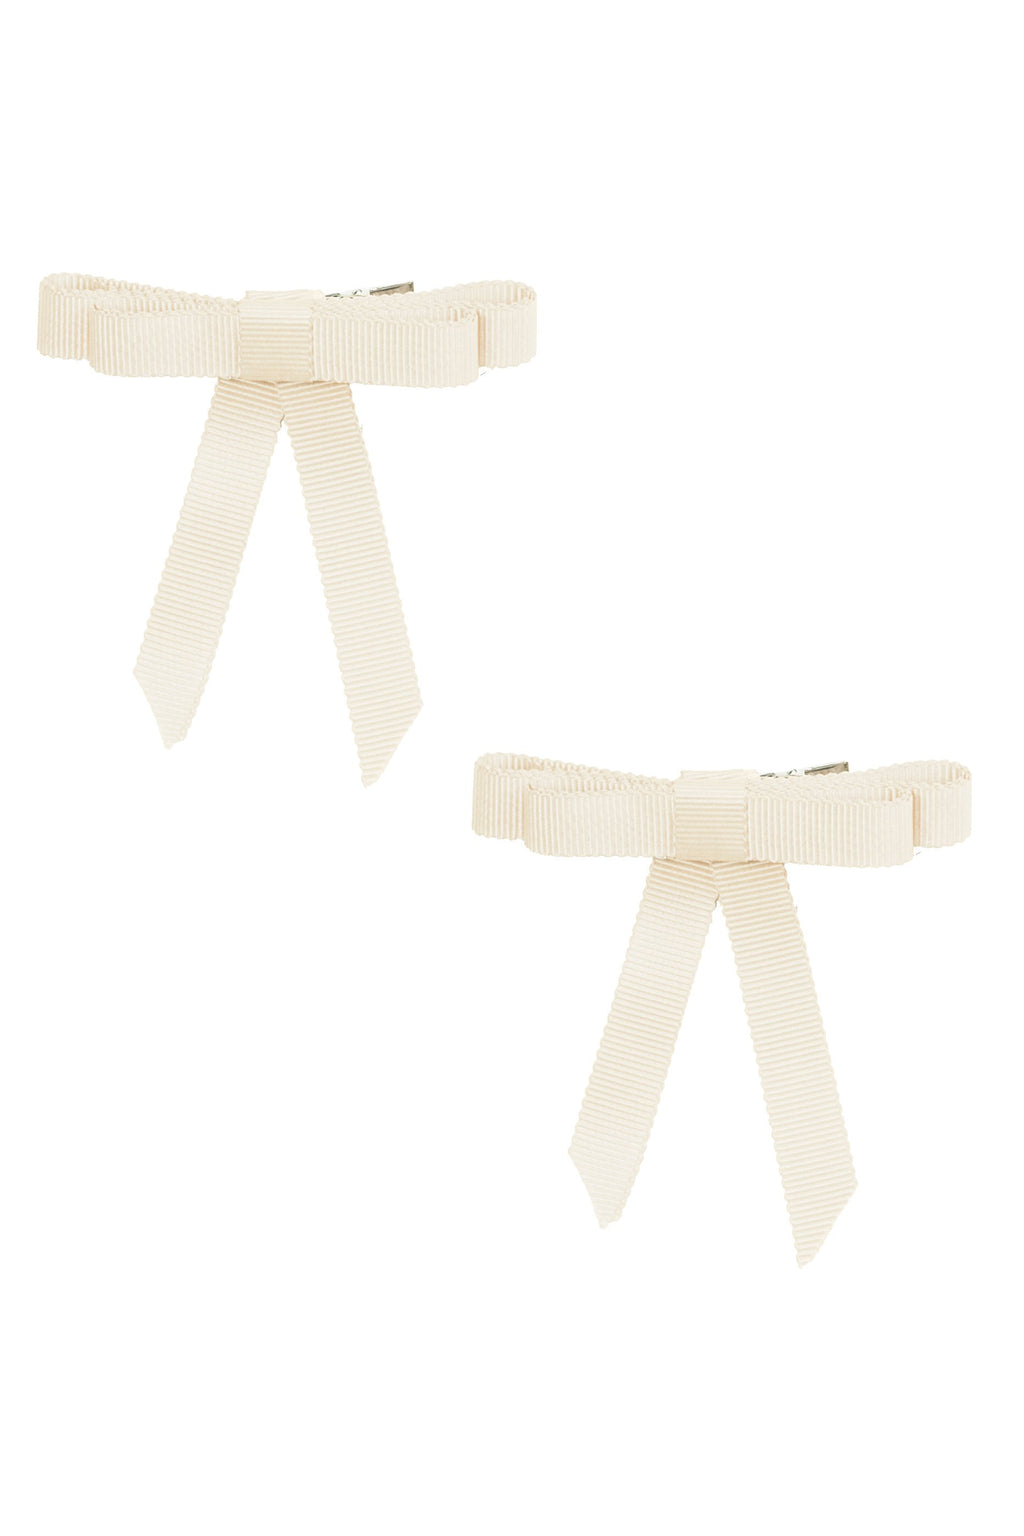 Grosgrain Bow Clip Set (2) - Ivory - PROJECT 6, modest fashion